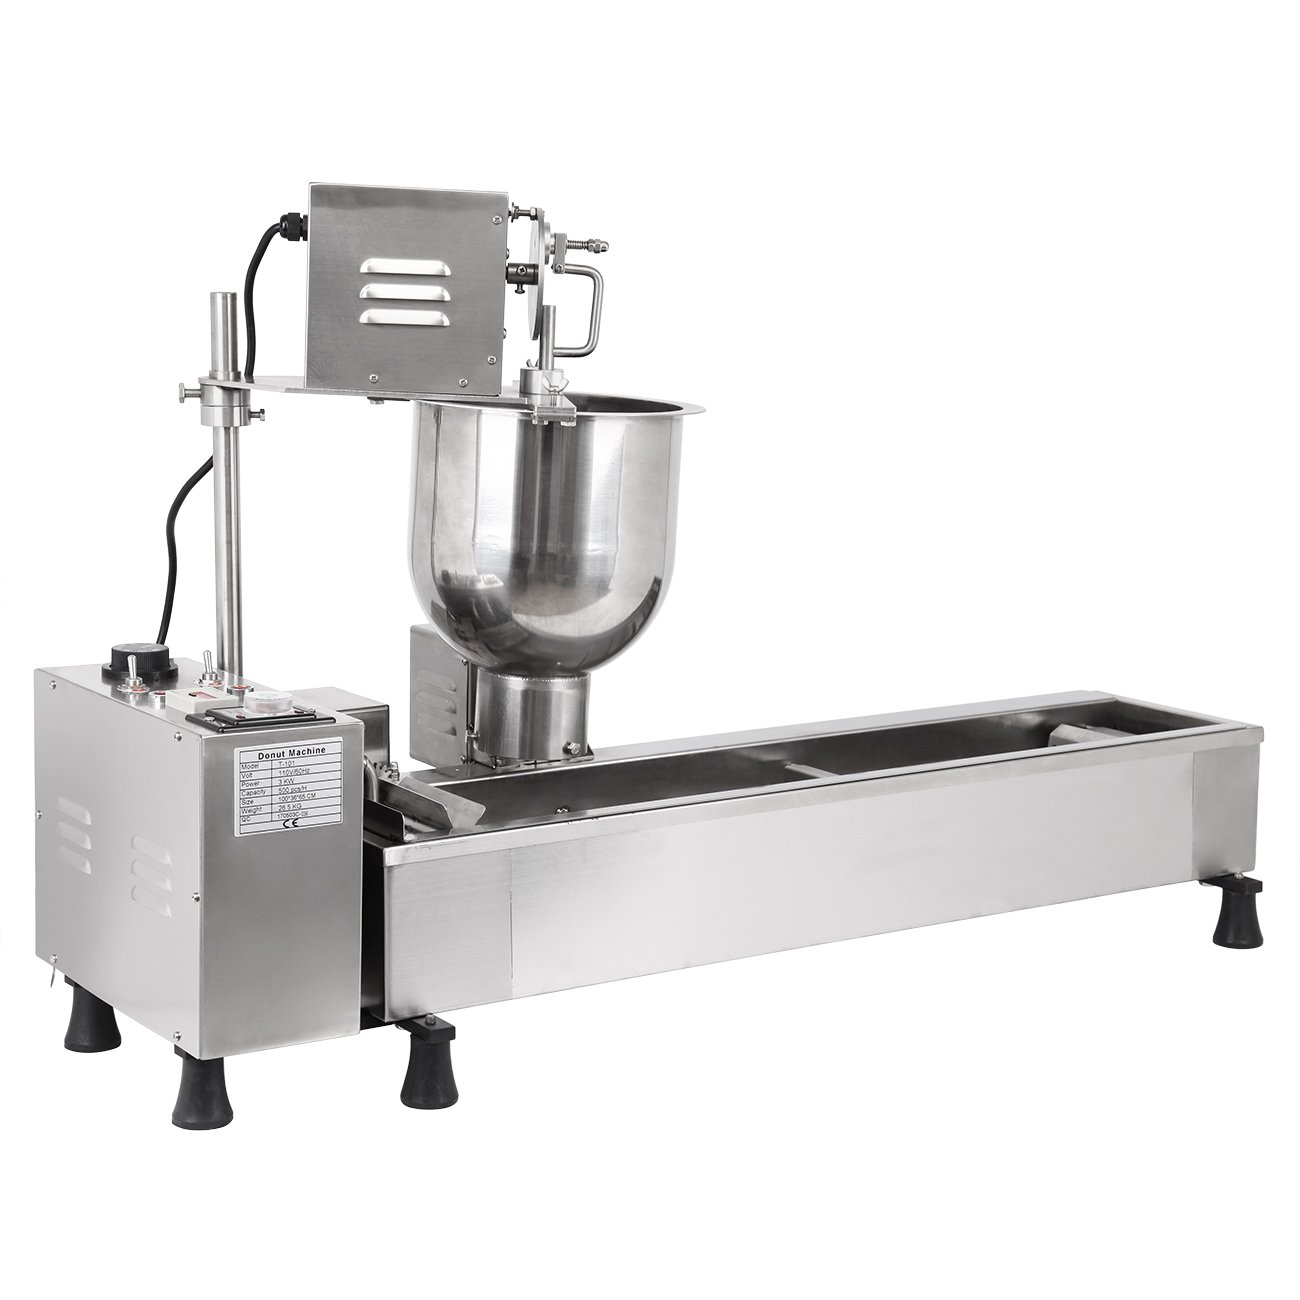 Ridgeyard Commercial Automatic Donut Making Machine Auto Donut Maker Machine with 3 Sizes Molds and 7L Bucket 110V 3000W, Ship From US by Ridgeyard (Image #3)